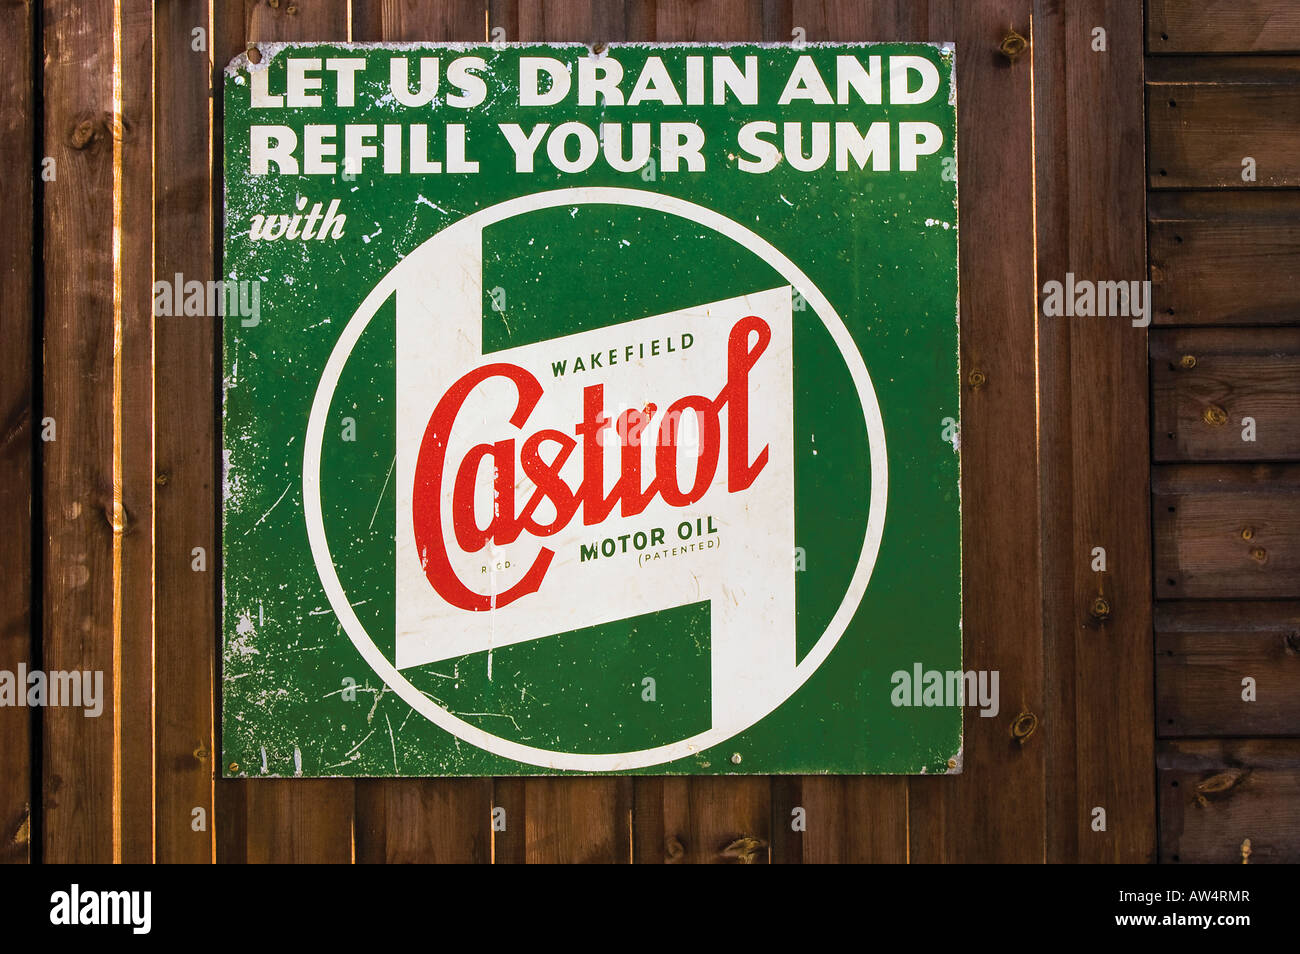 castrol motor oil sign logo stock photo royalty free